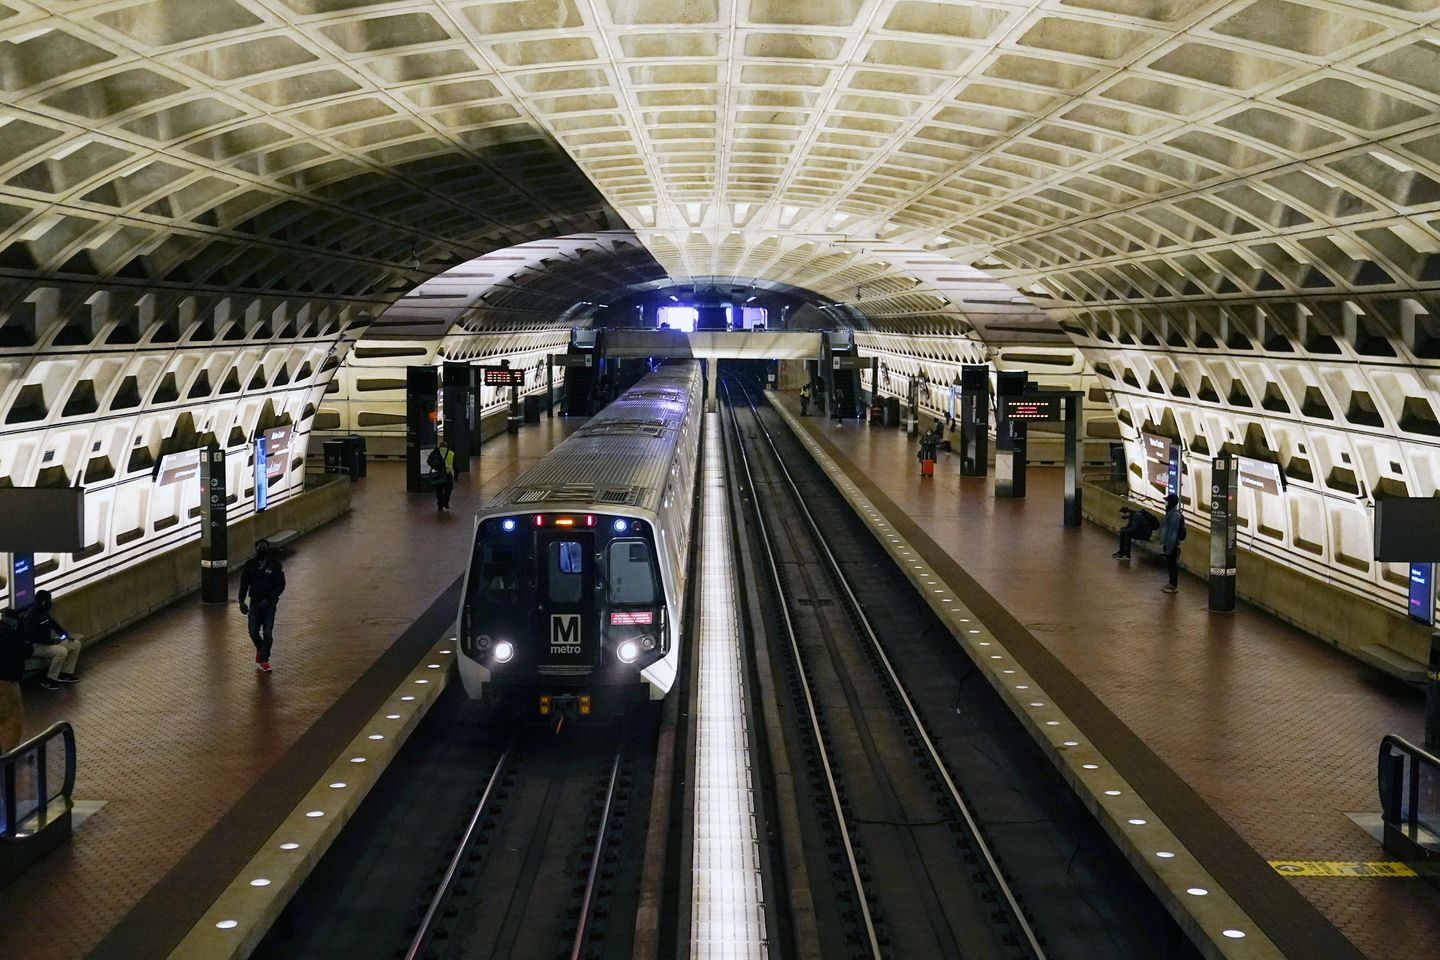 Metrorail safety is not an option